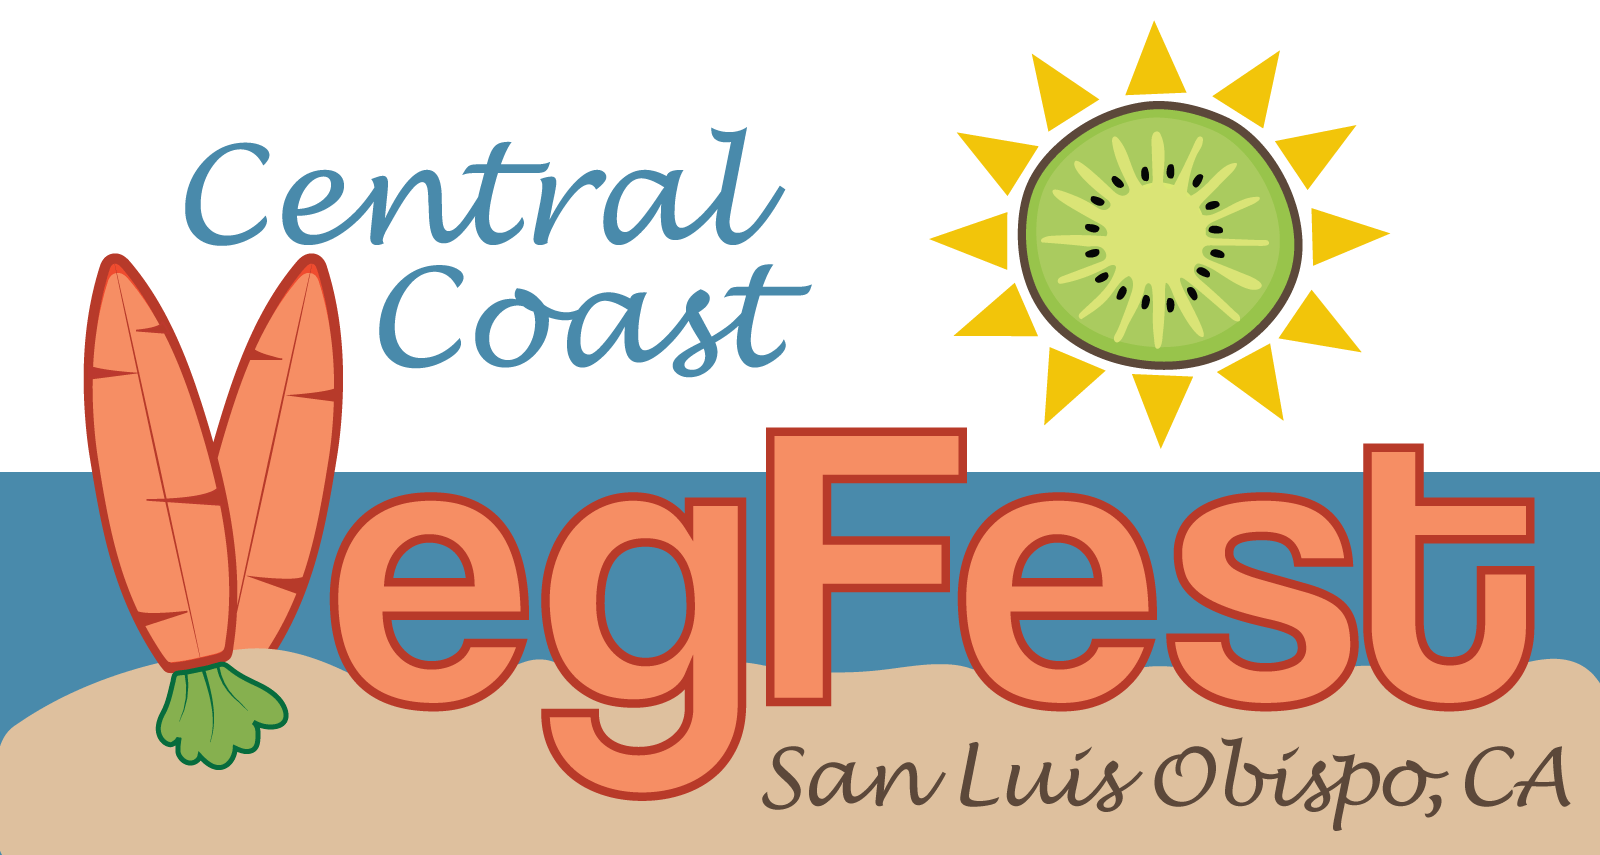 2019 Central Coast VegFest